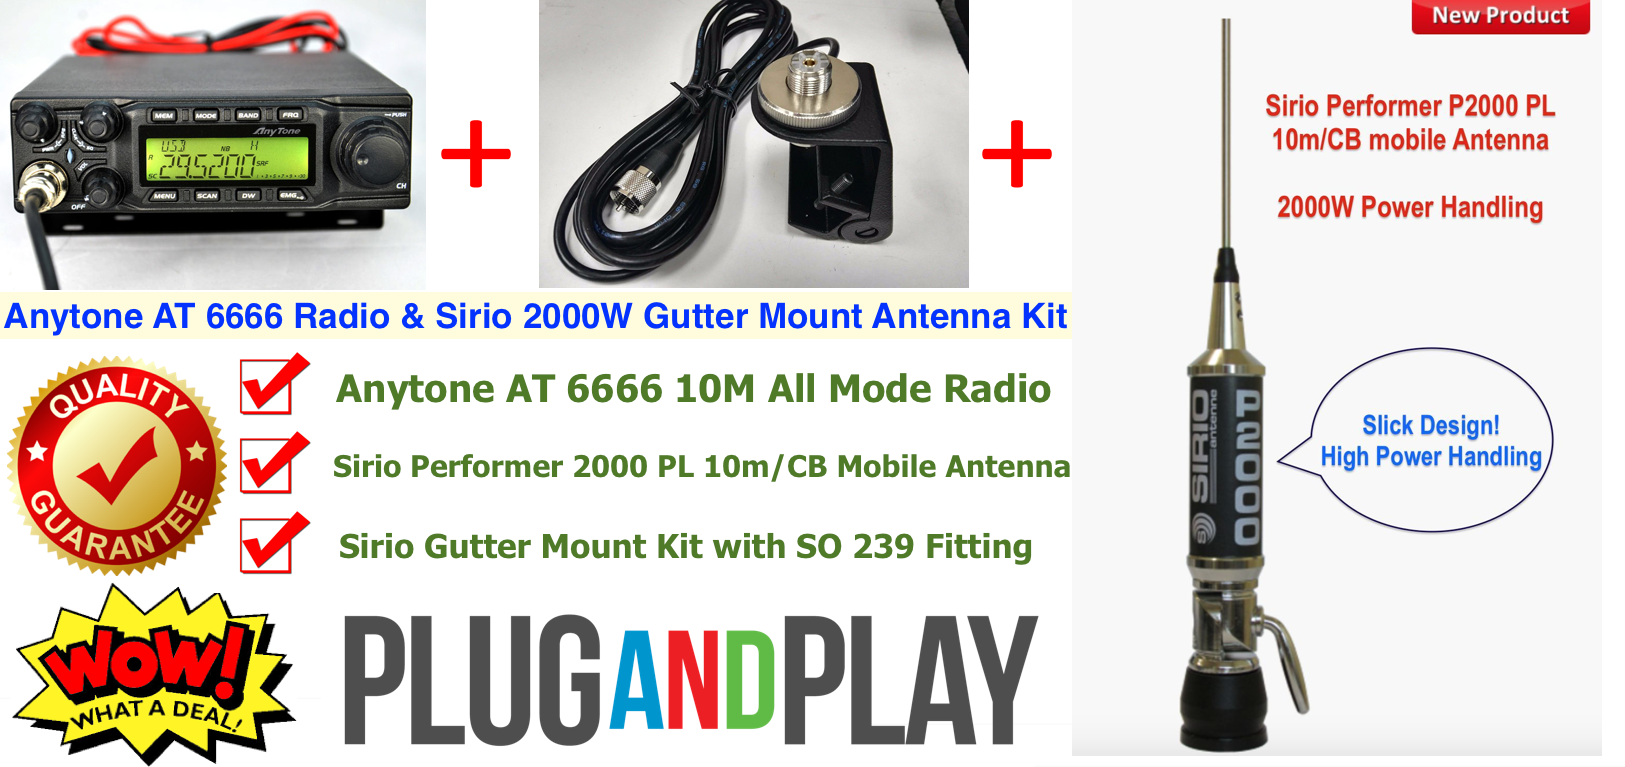 Anytone AT 6666 All Mode Radio & Sirio P2000 Ant & Gutter Mount